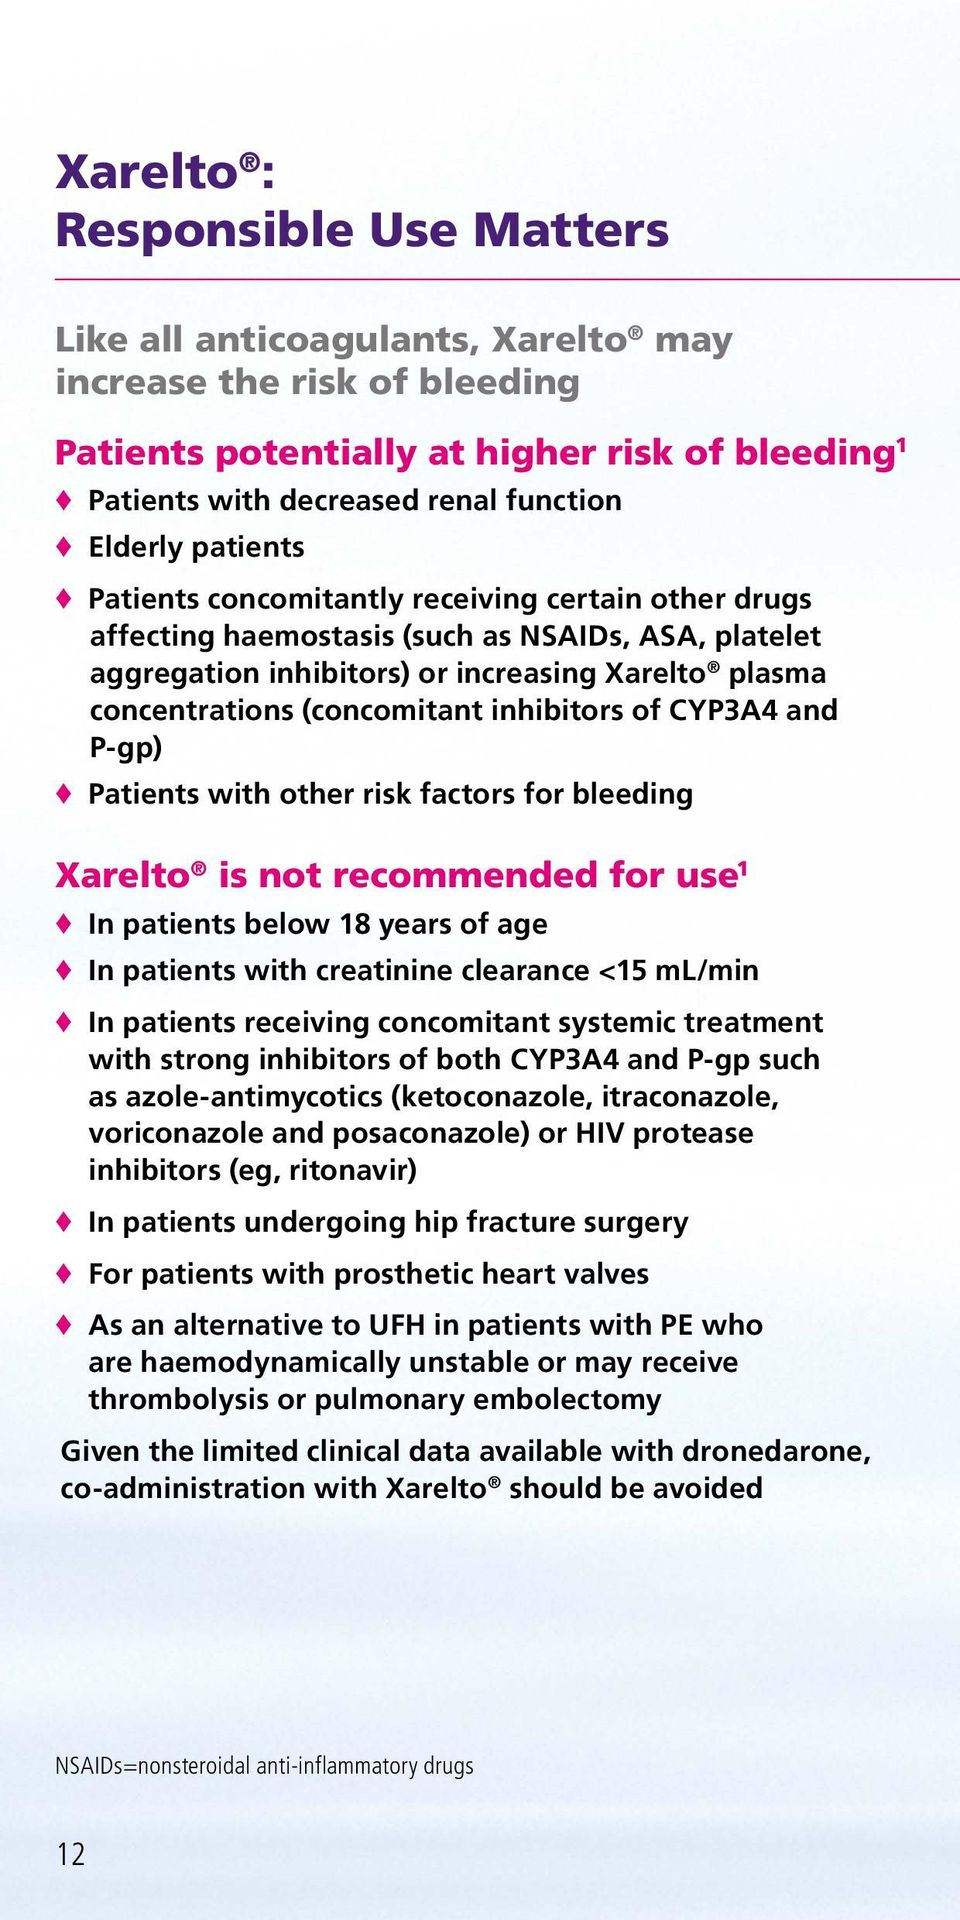 inhibitors of CYP3A4 and P-gp) Patients with other risk factors for bleeding Xarelto is not recommended for use 1 In patients below 18 years of age In patients with creatinine clearance <15 ml/min In